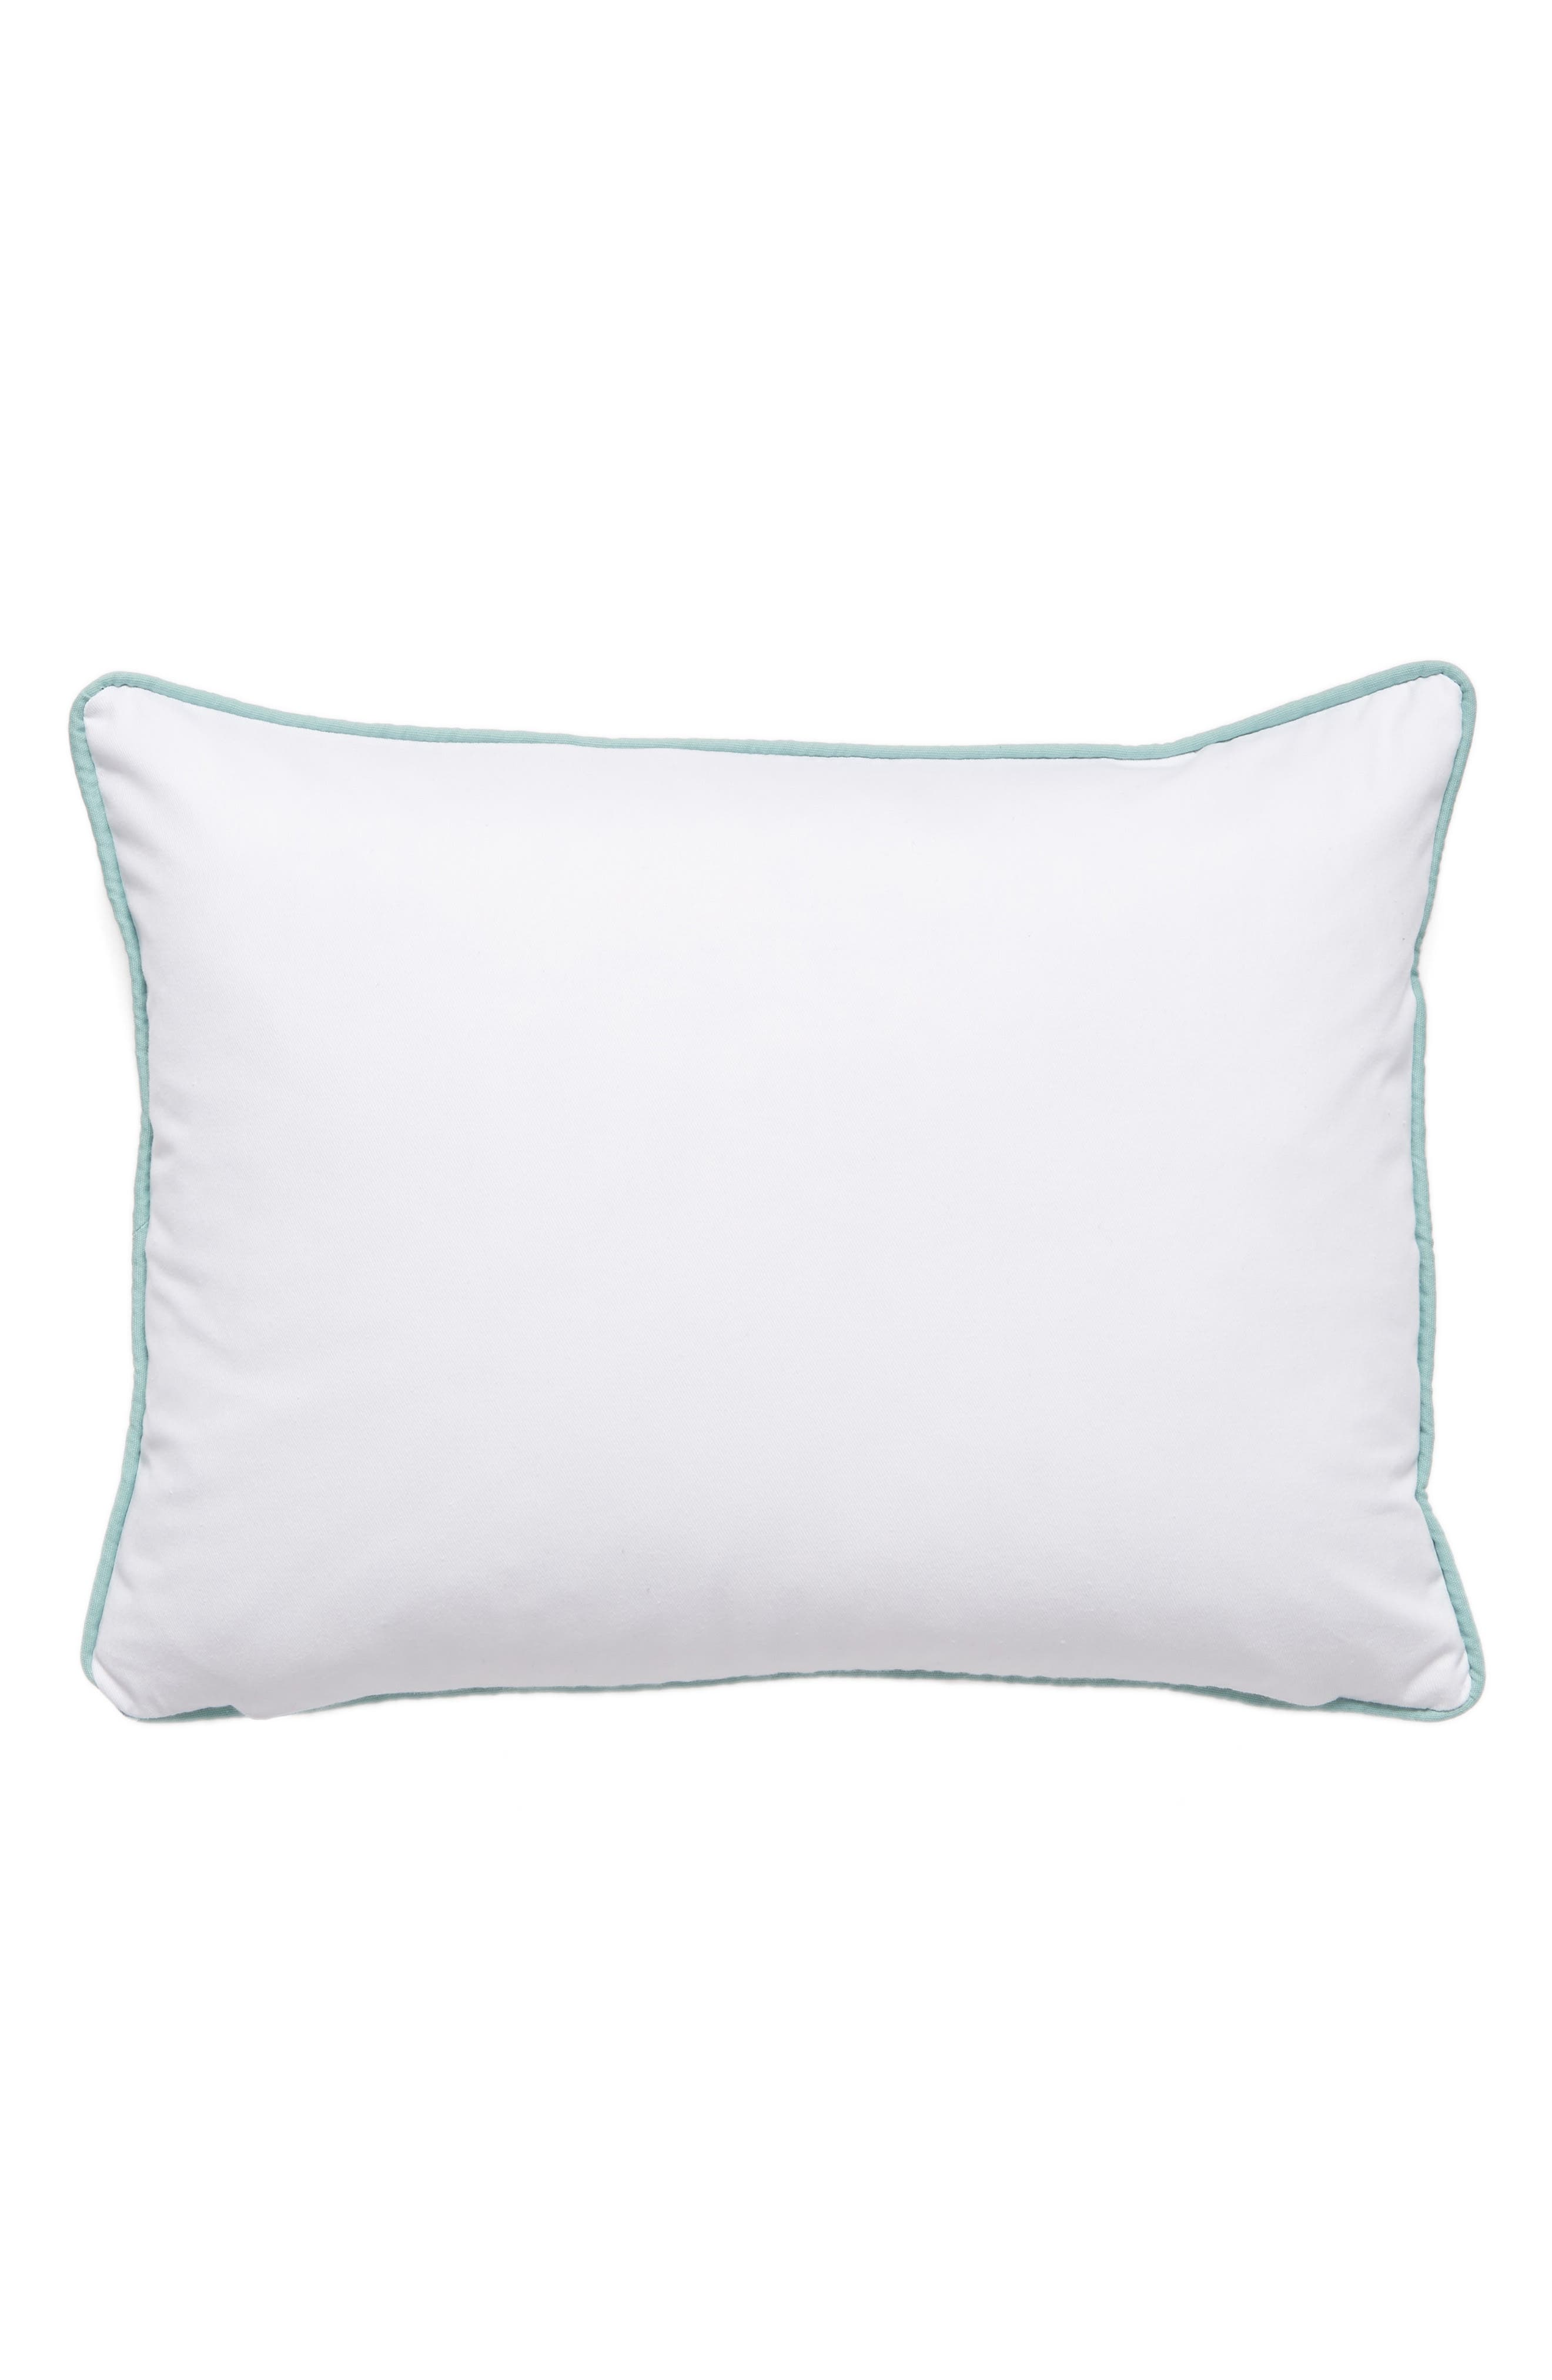 Jordan Embroidered Accent Pillow,                             Alternate thumbnail 3, color,                             Ivory